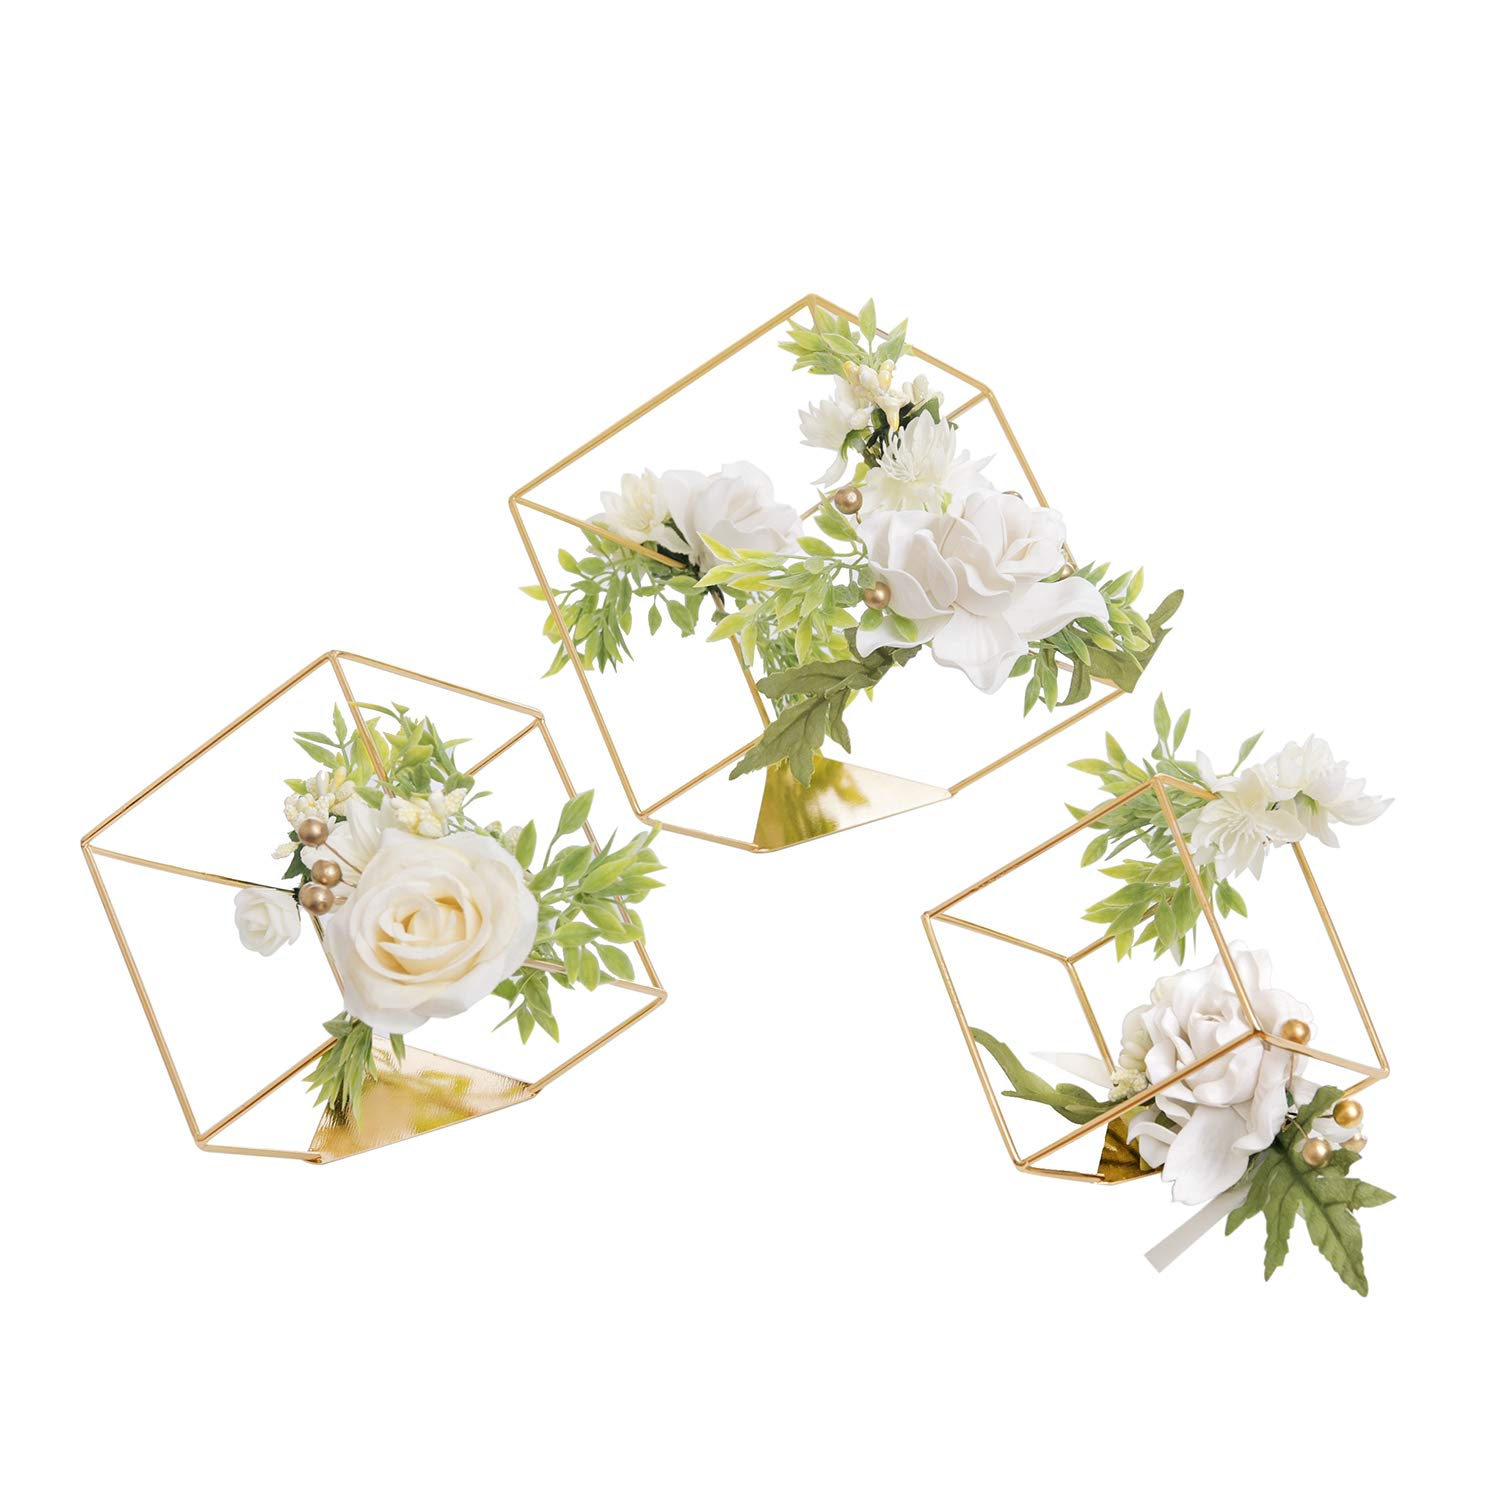 Ling's moment Set of 3 Gold Geometric Wedding Centerpieces Ornaments Ivory Rose Flower Table Centerpieces for Wedding Party Decor